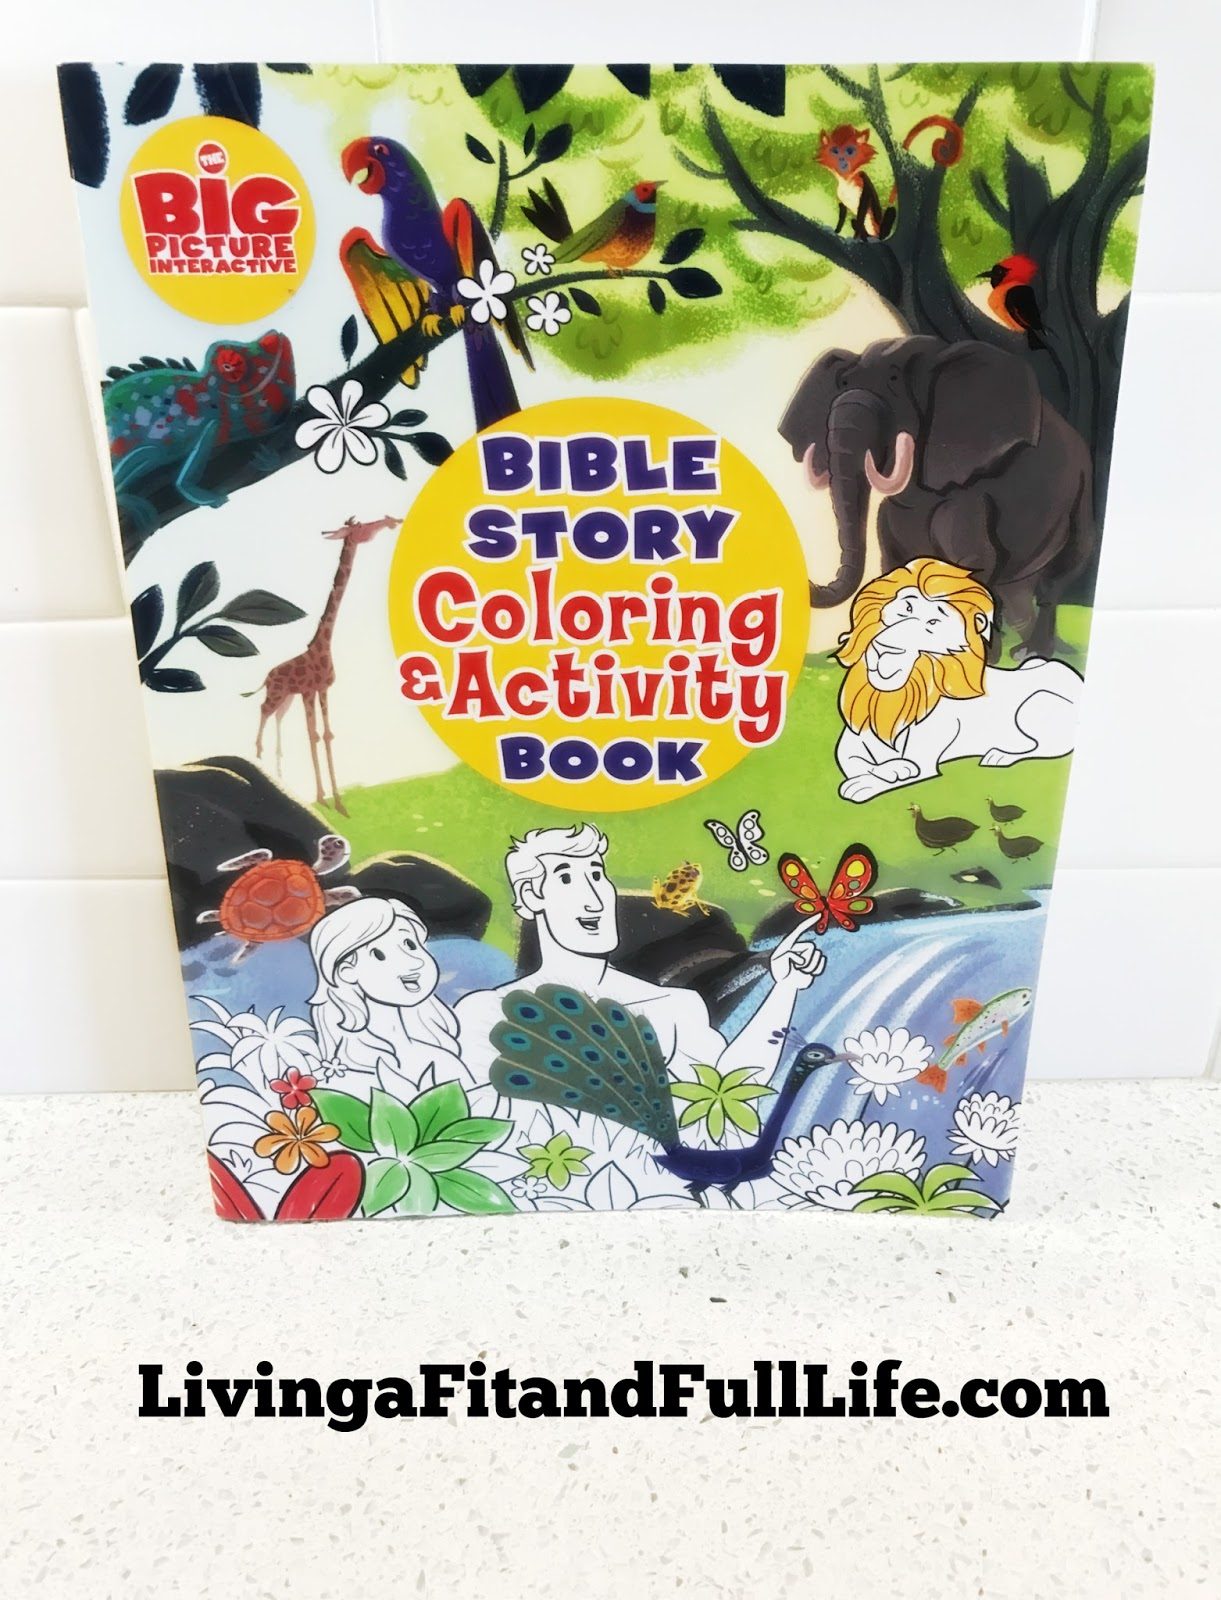 Living A Fit And Full Life The Bible Story Coloring And Activity Book For Kids Is Hours And